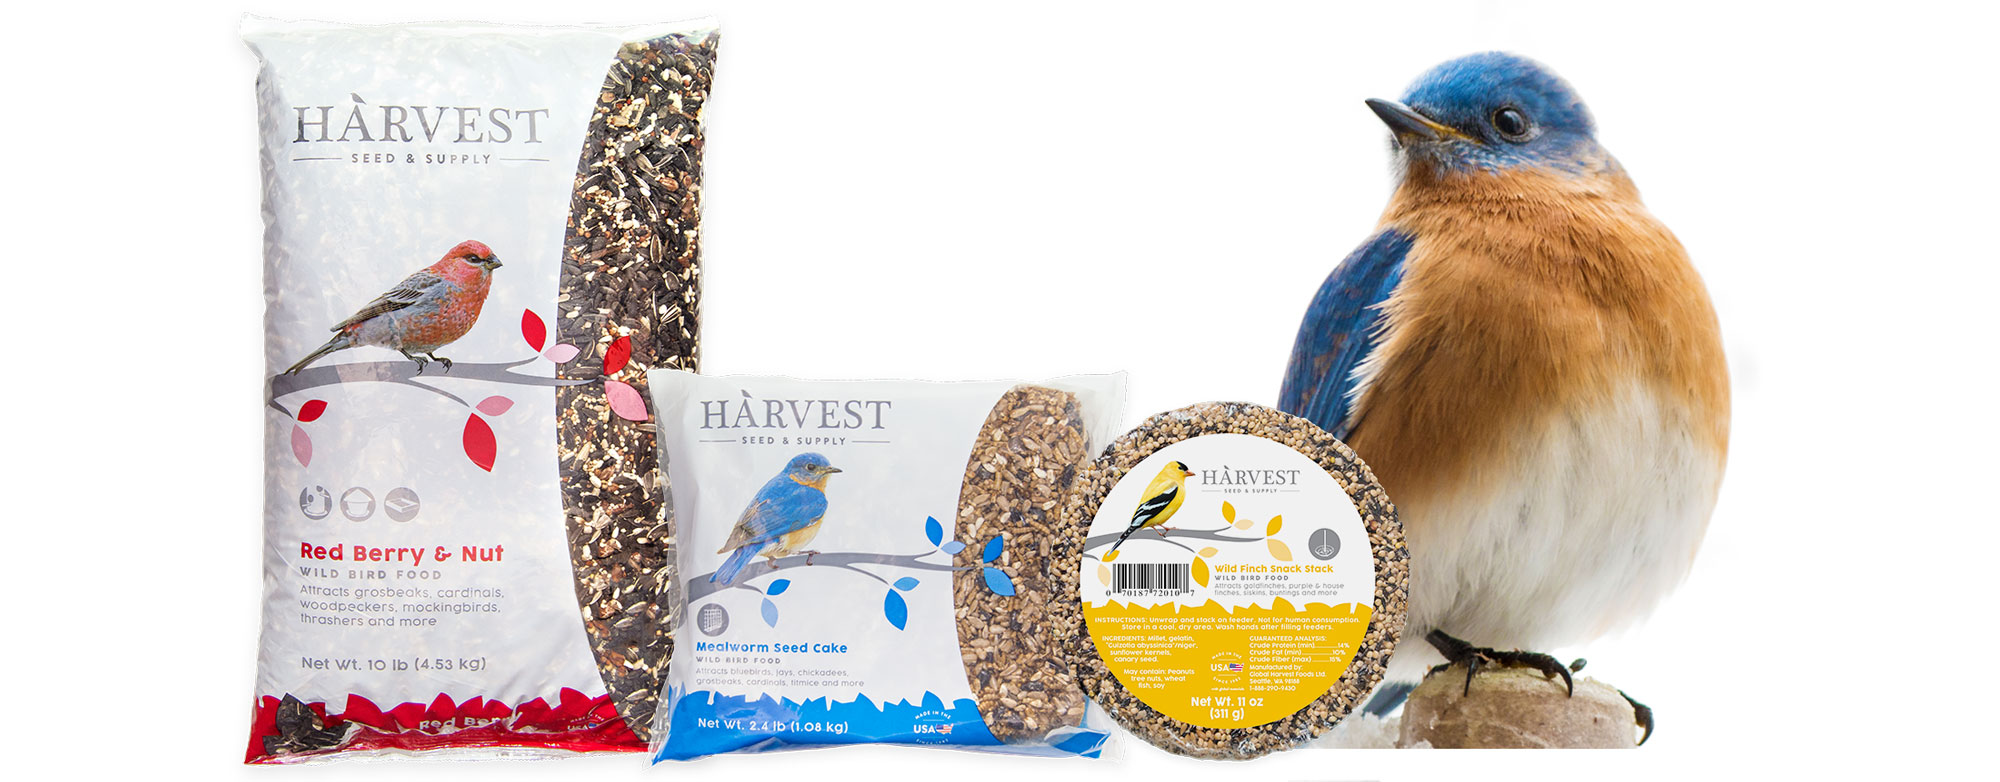 Harvest is a new line of simple, natural, family-made wild bird food created right here in America.